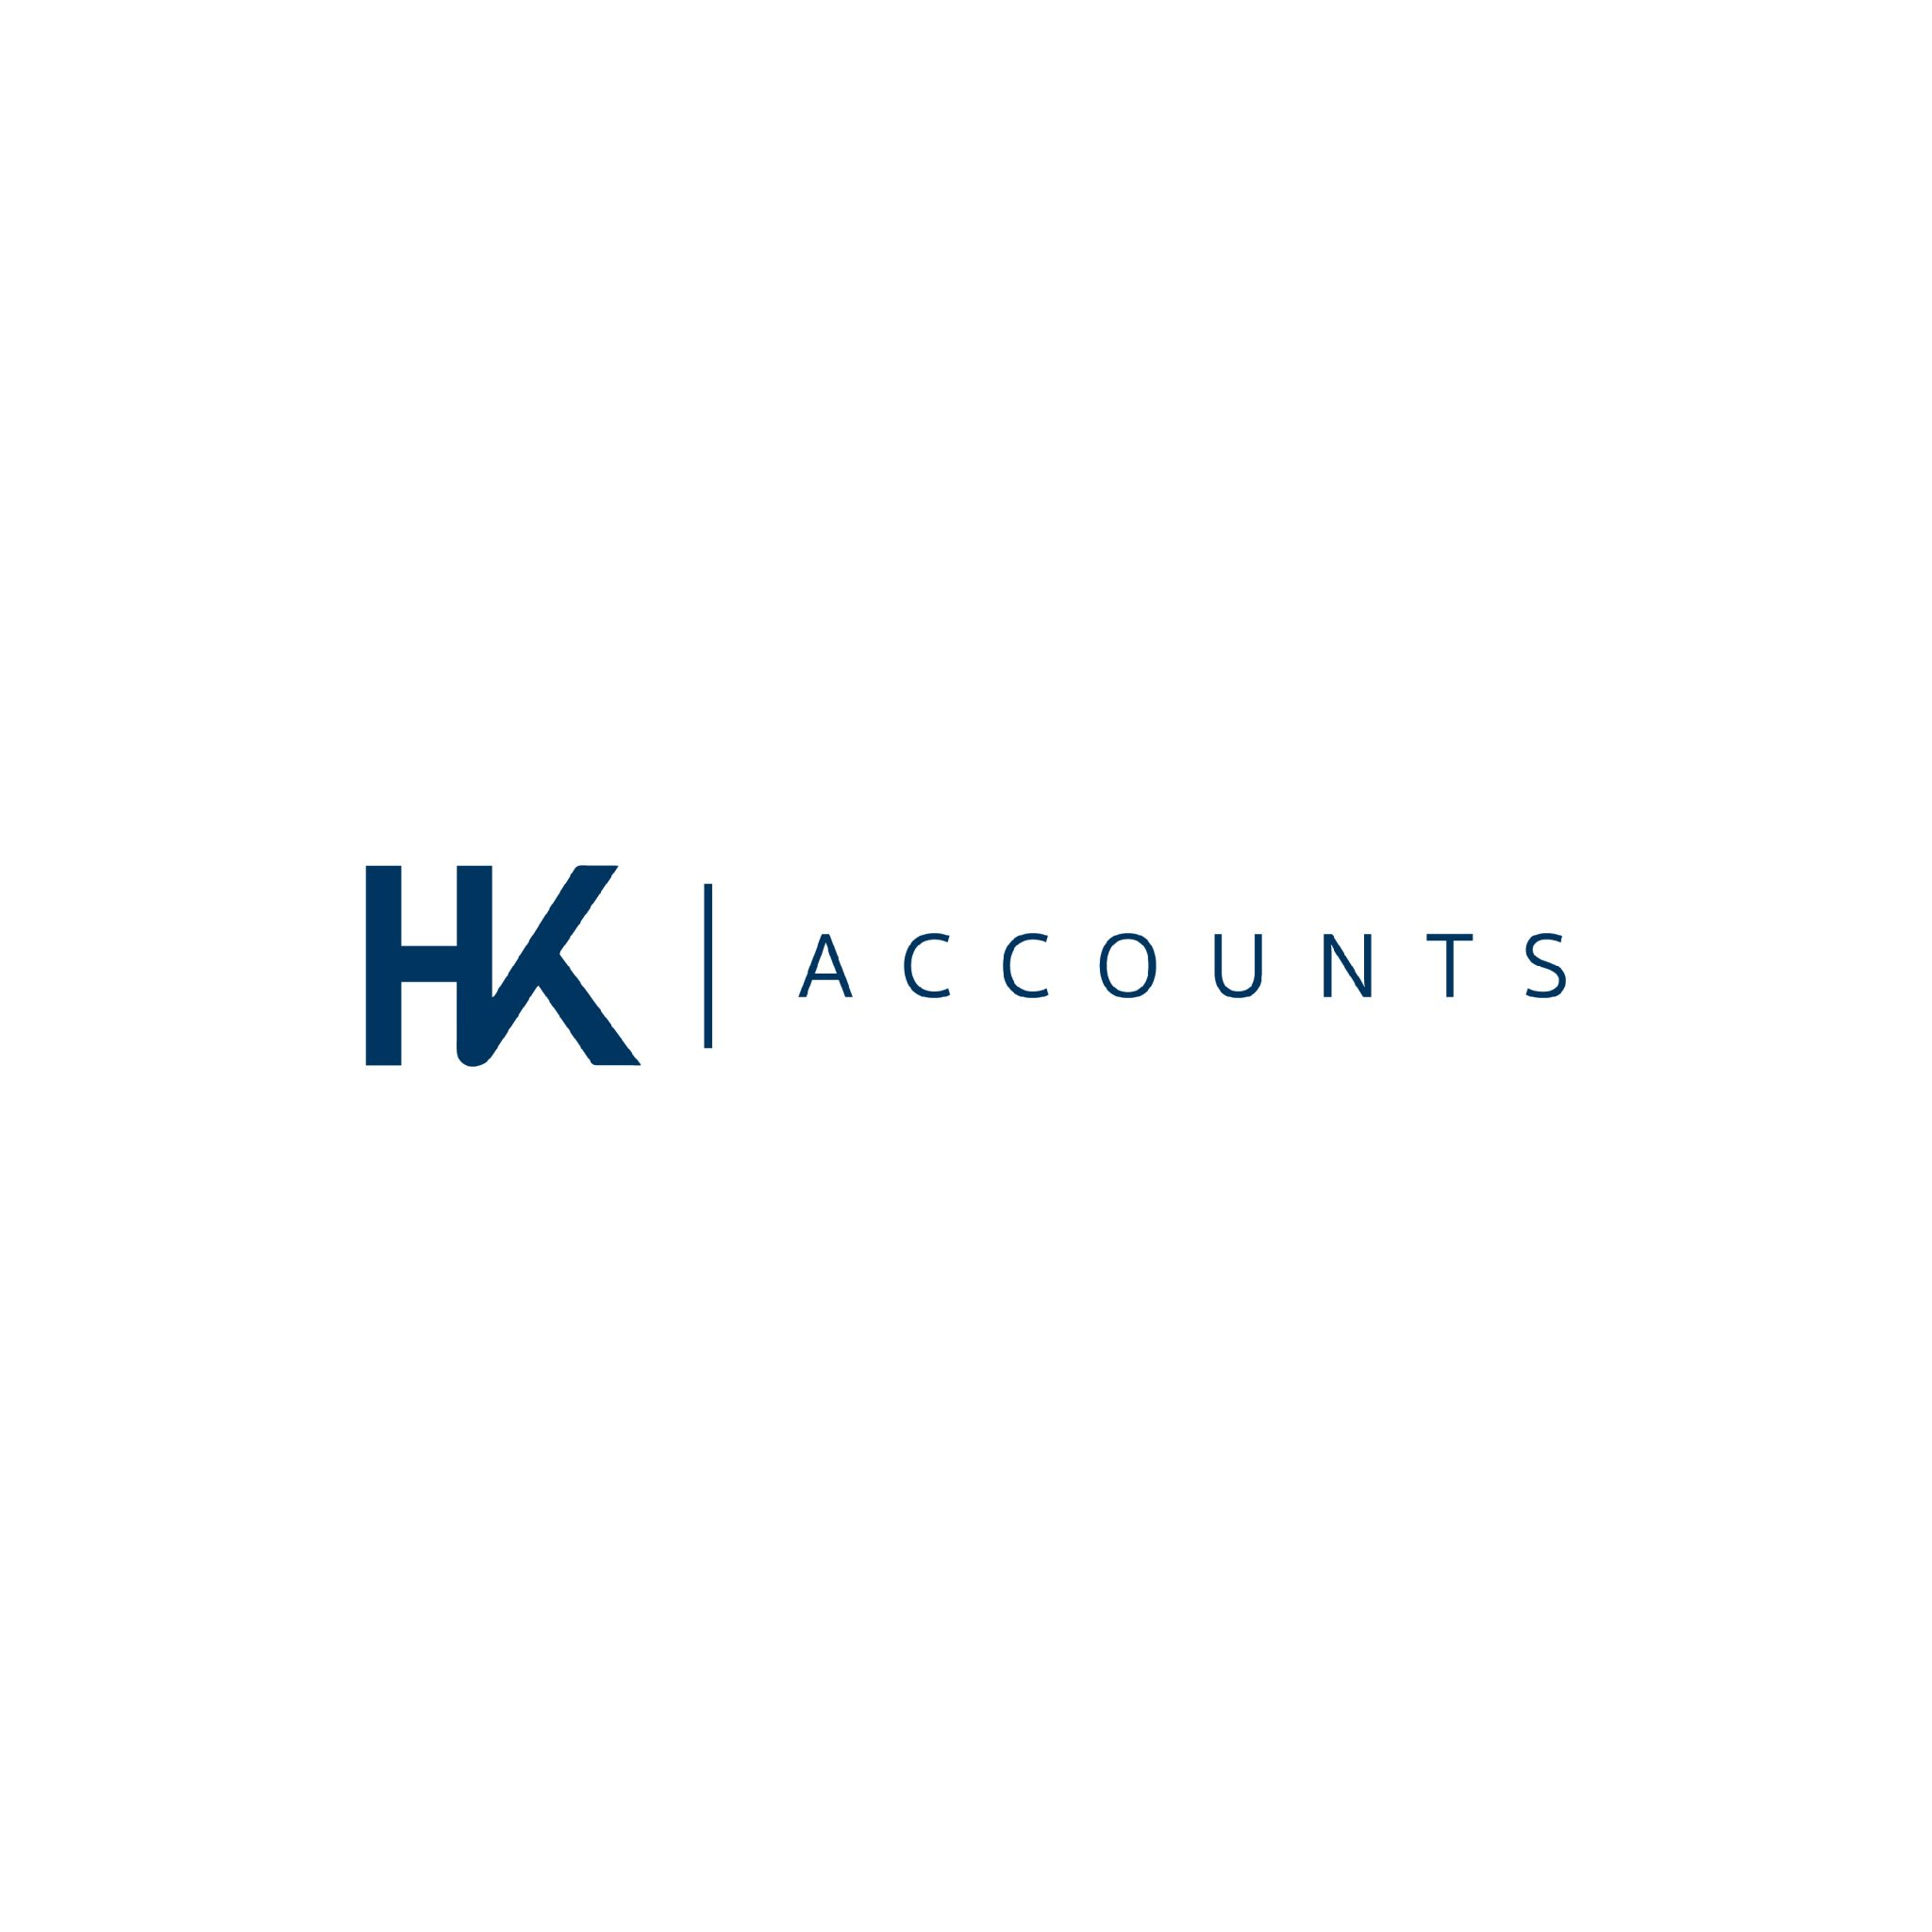 HK Accounts Ltd